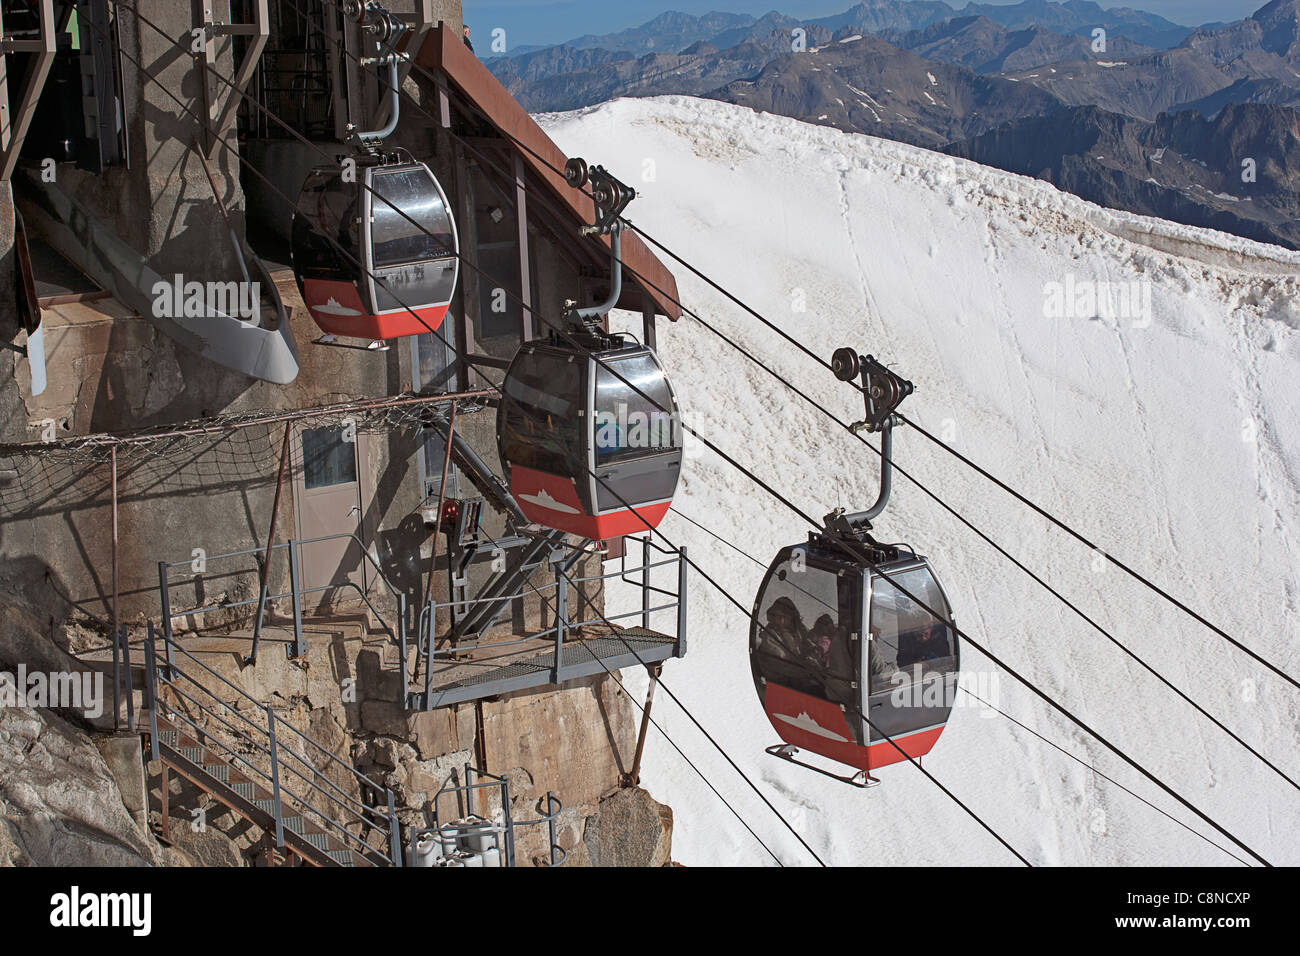 Italy - France, Courmayeur, Mont Blanc, Aiguille du Midi, cable cars setting off for Helbronner peak - Stock Image